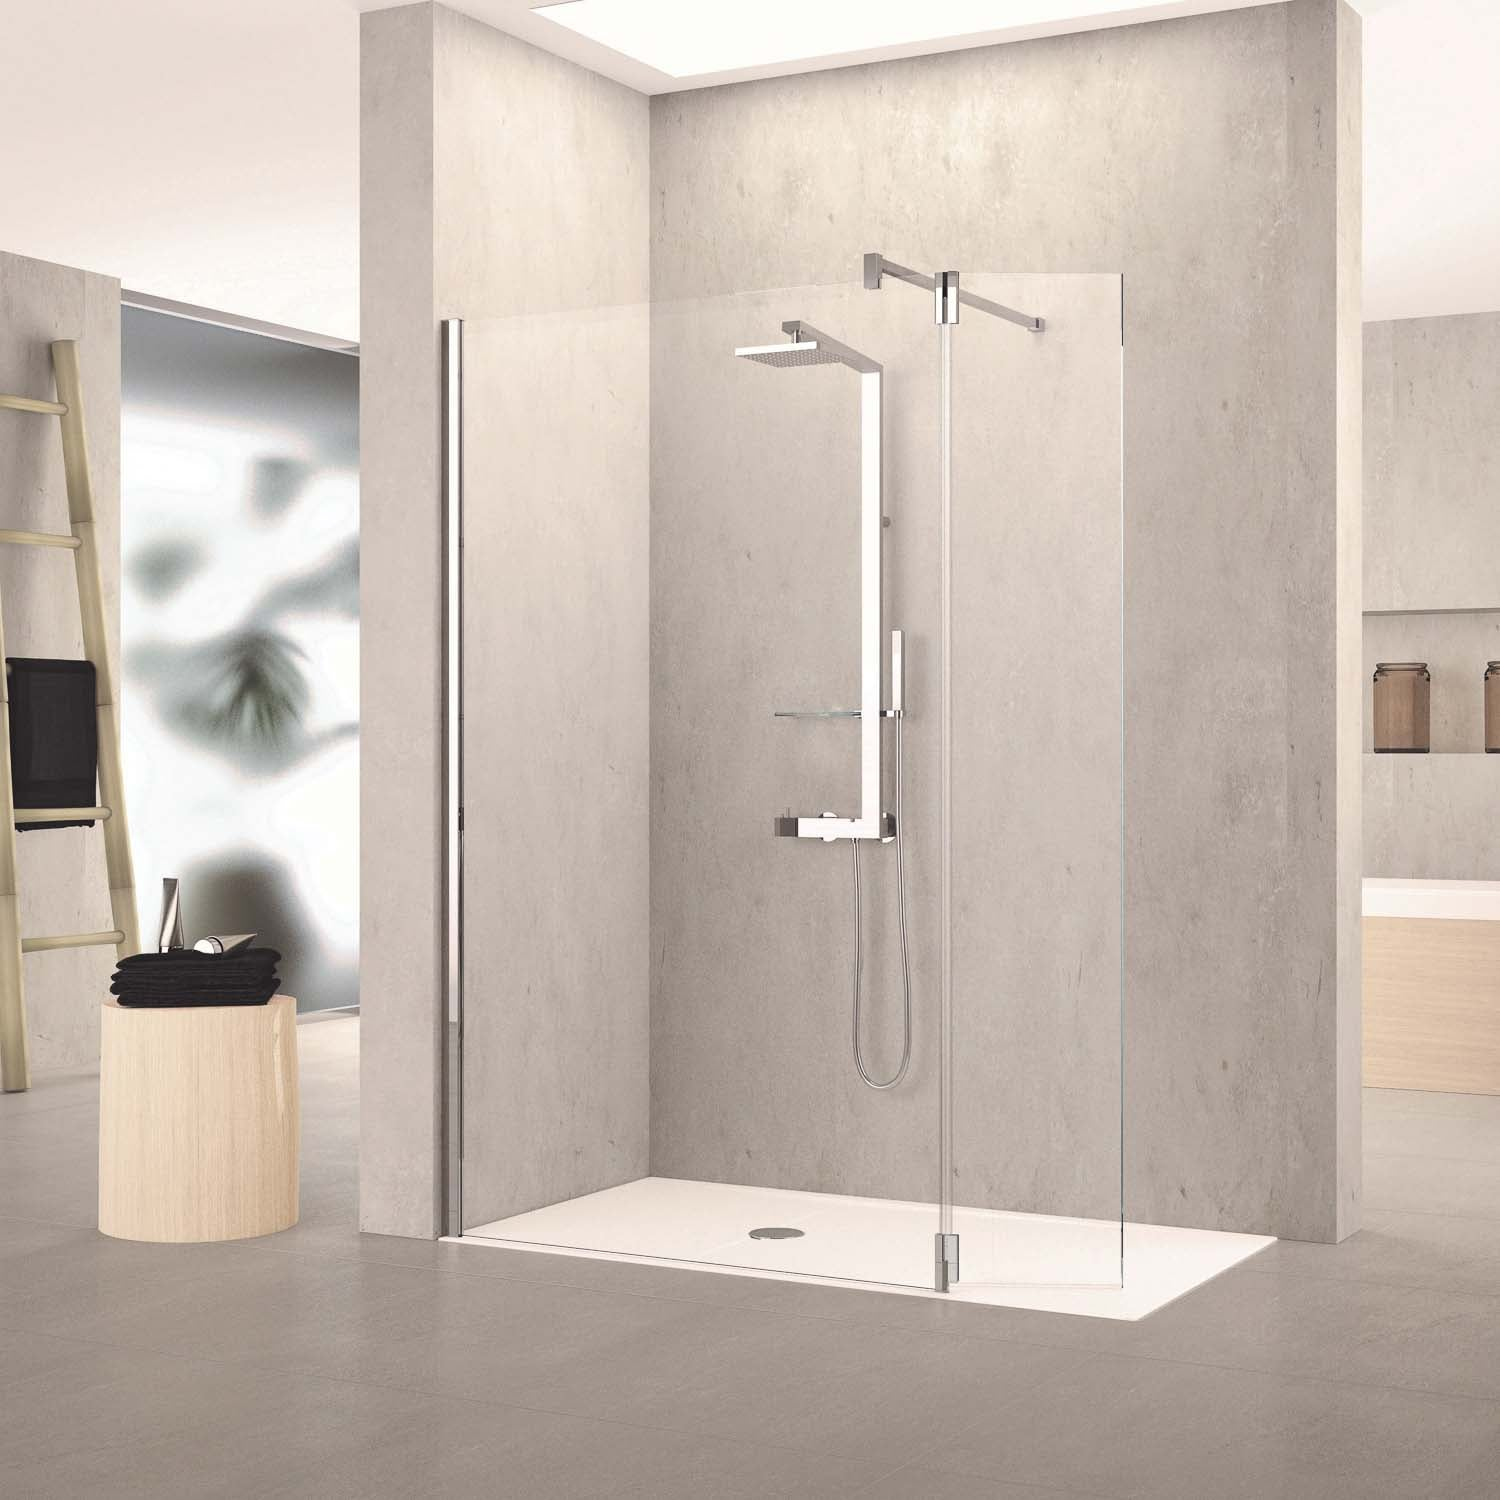 1170-1200mm Ergo Wet Room Screen Clear Glass with a chrome finish lifestyle image